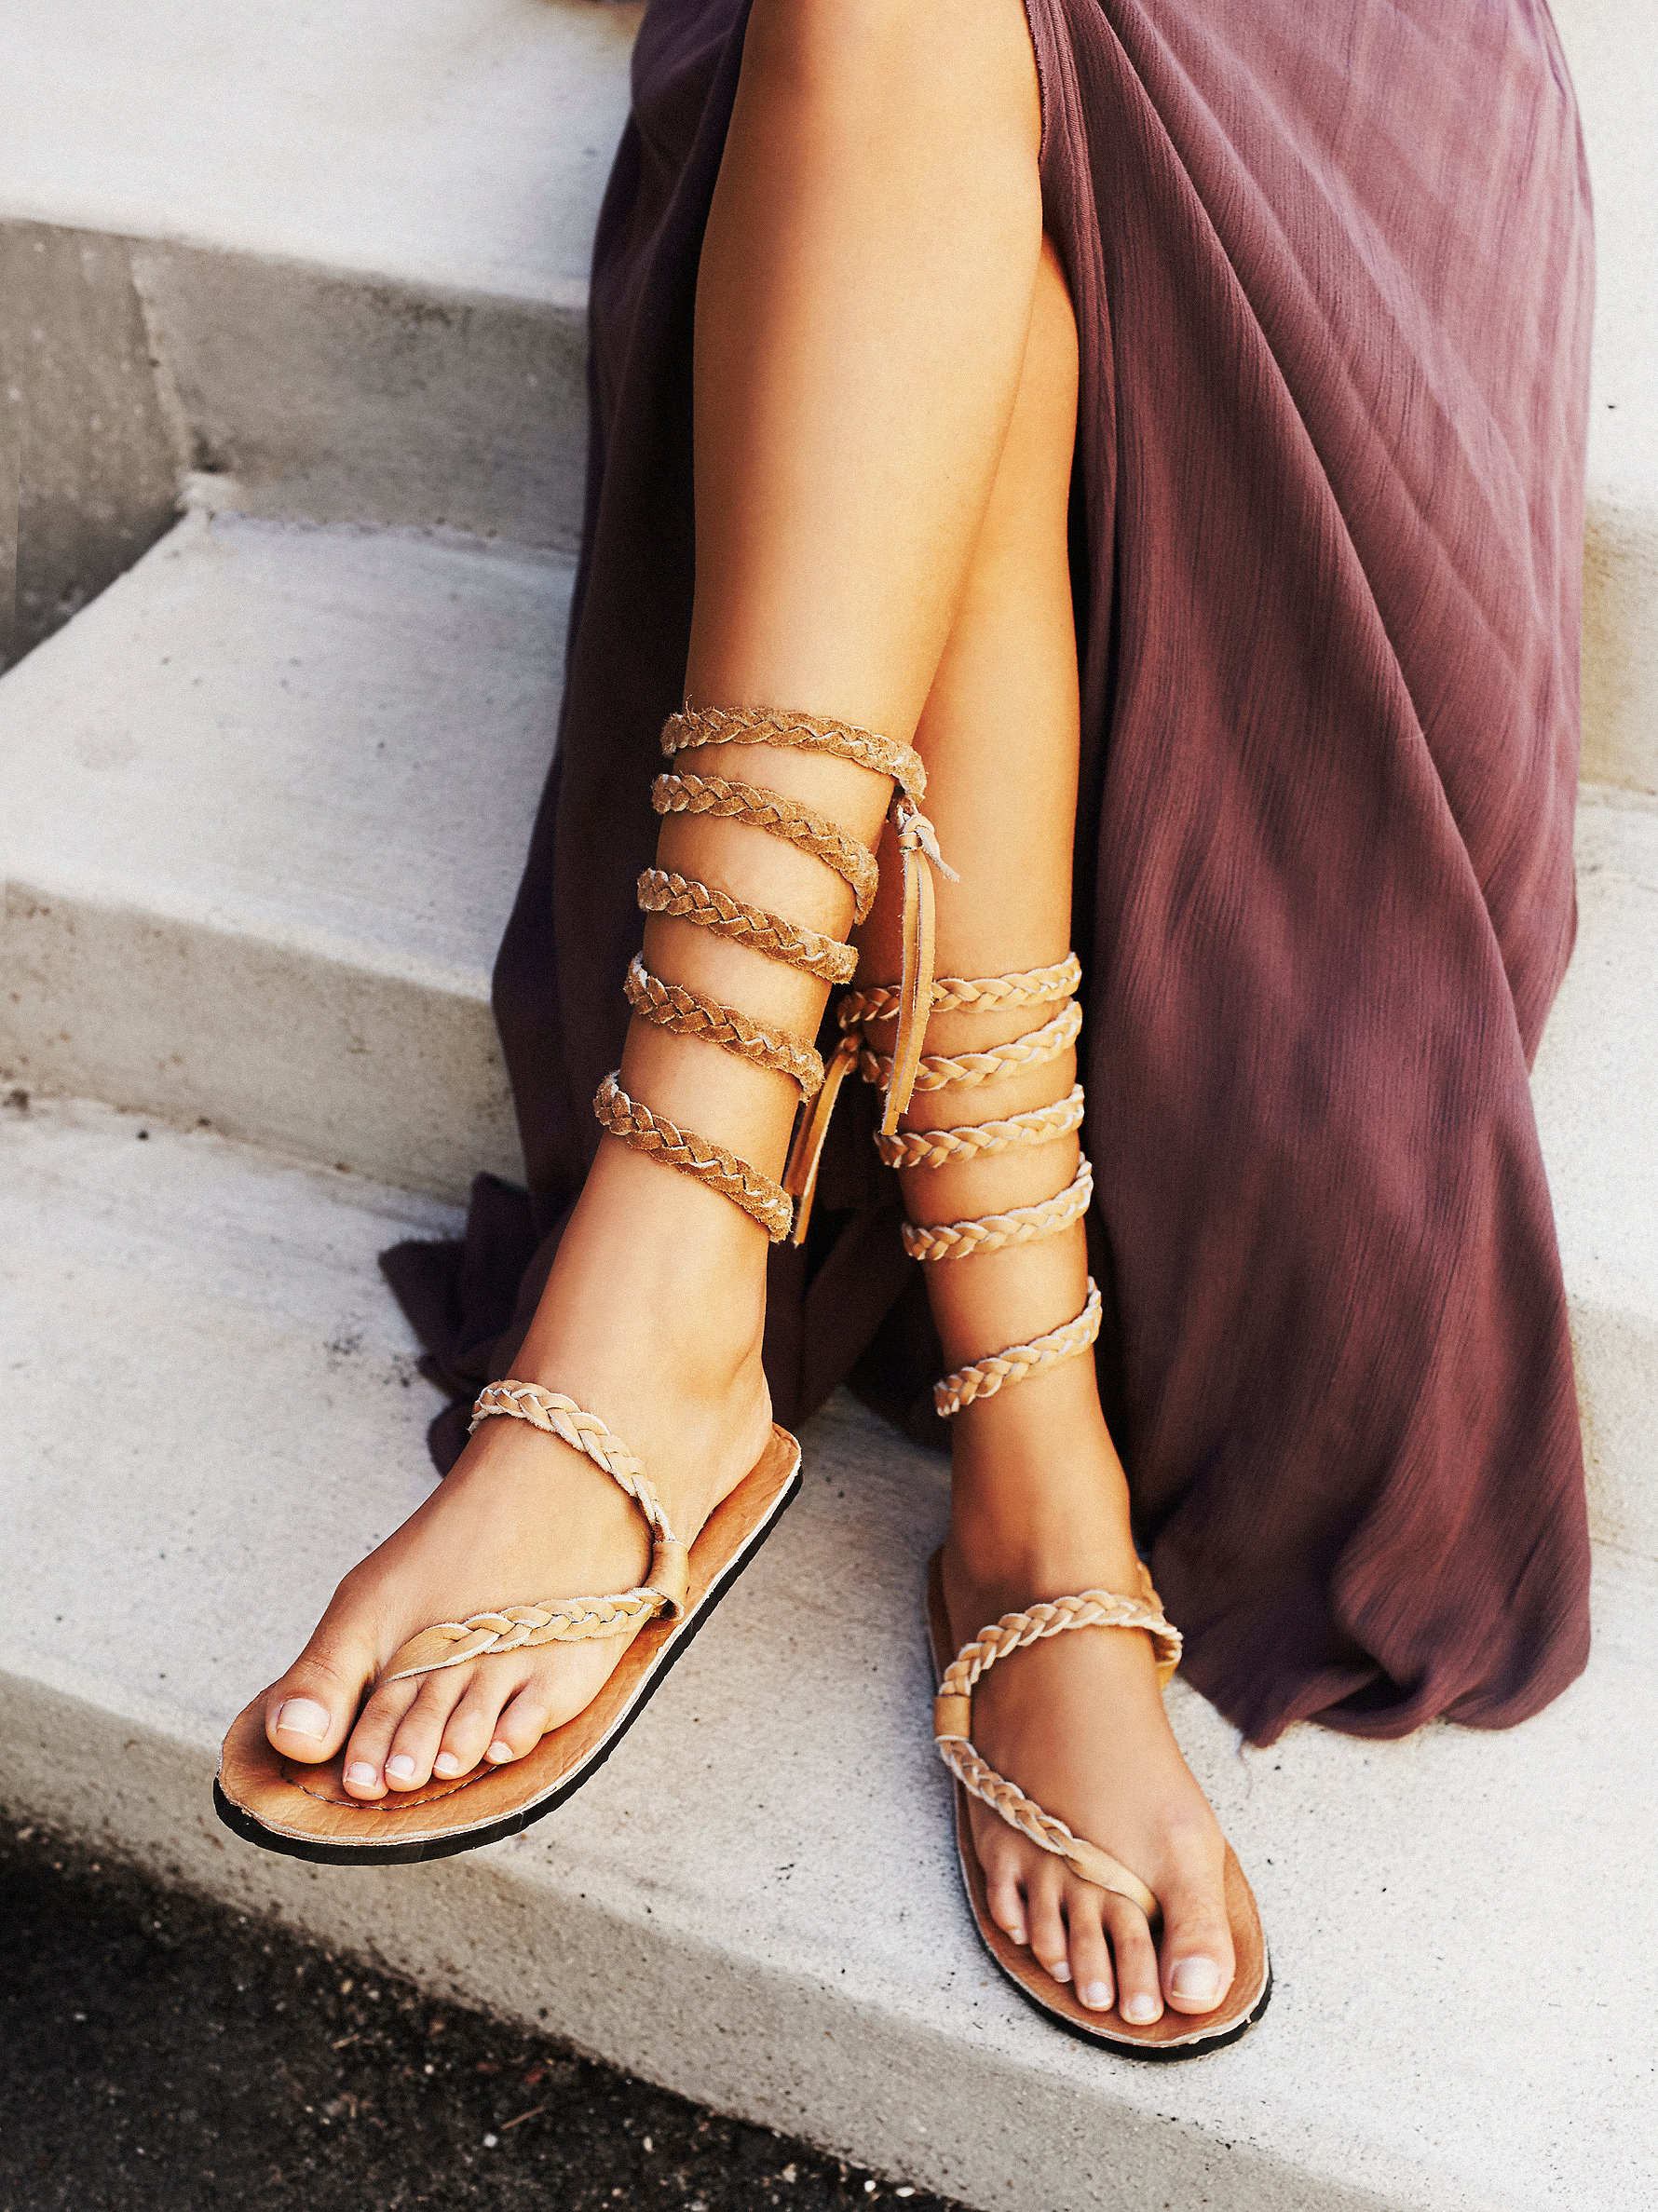 Free People' Sexy Strappy Sandals - Style And Cheek